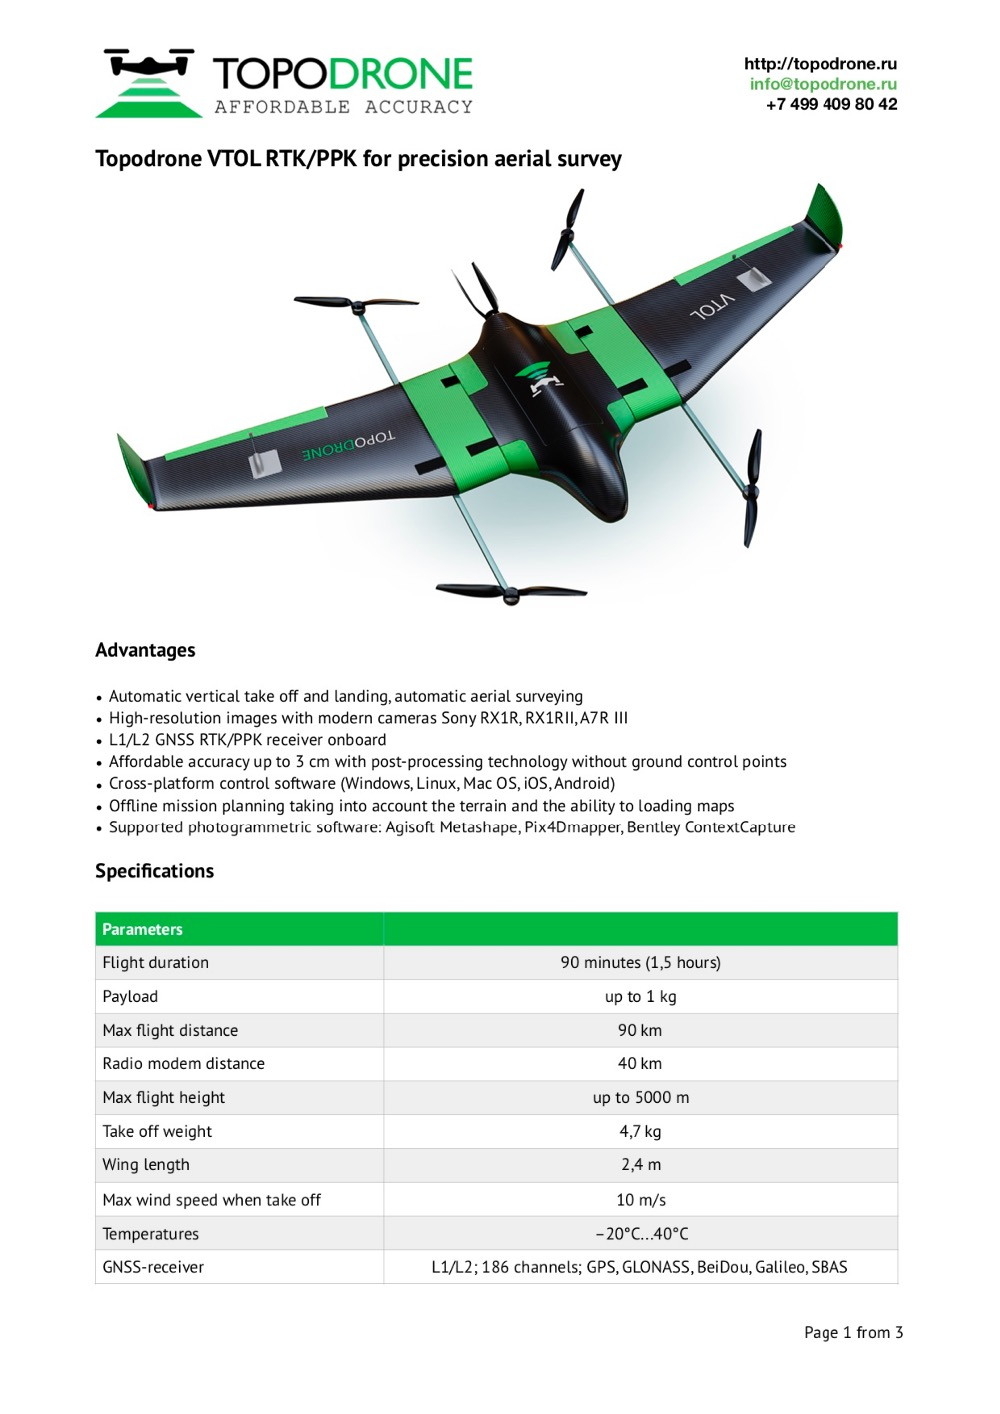 HOT SALE] Topodrone VTOL RTK/PPK for precision aerial survey